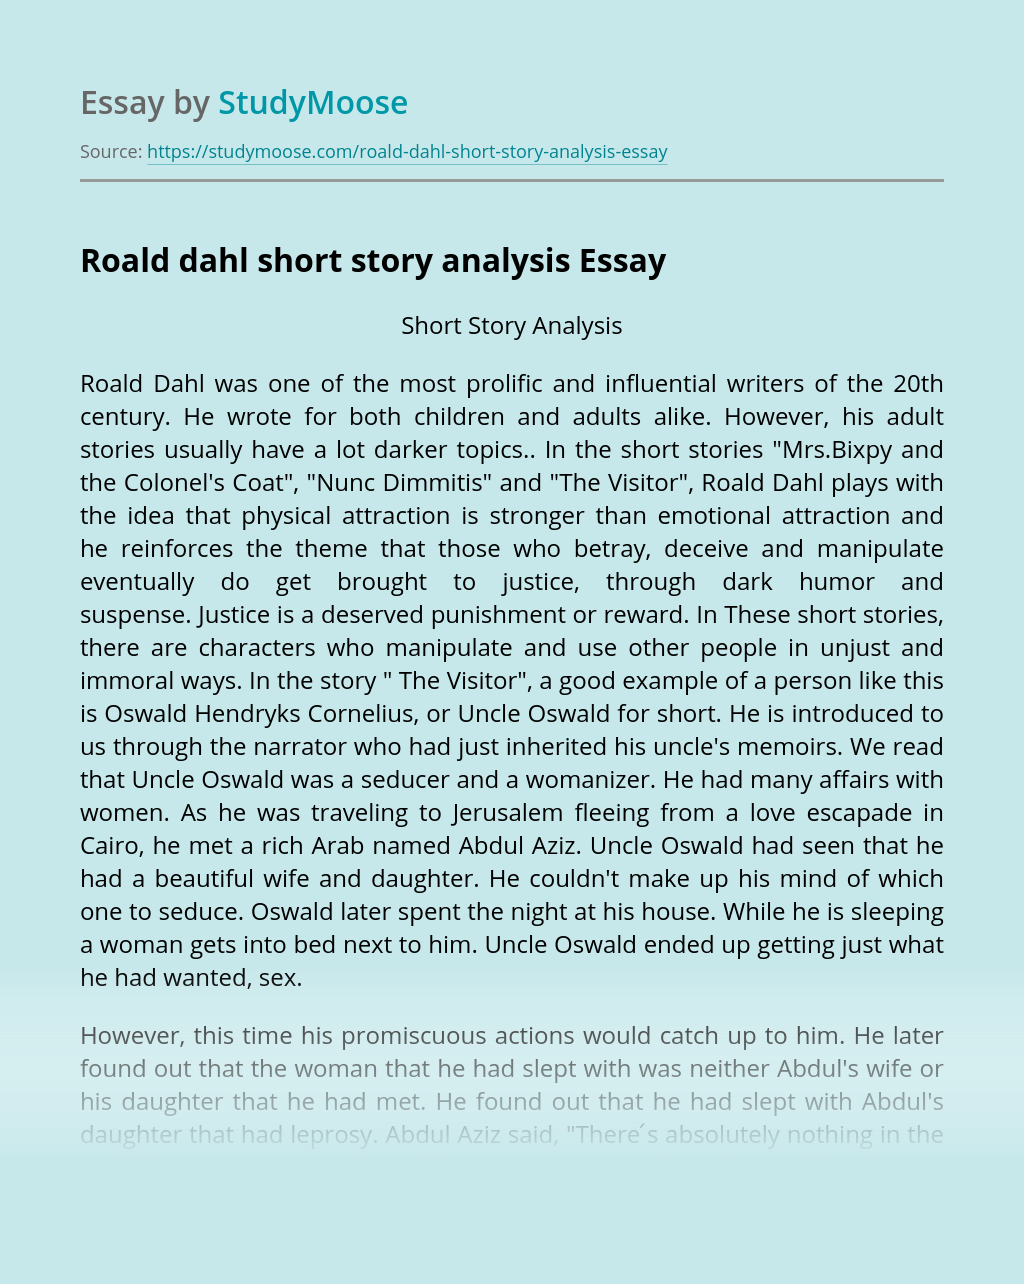 Roald dahl short story analysis